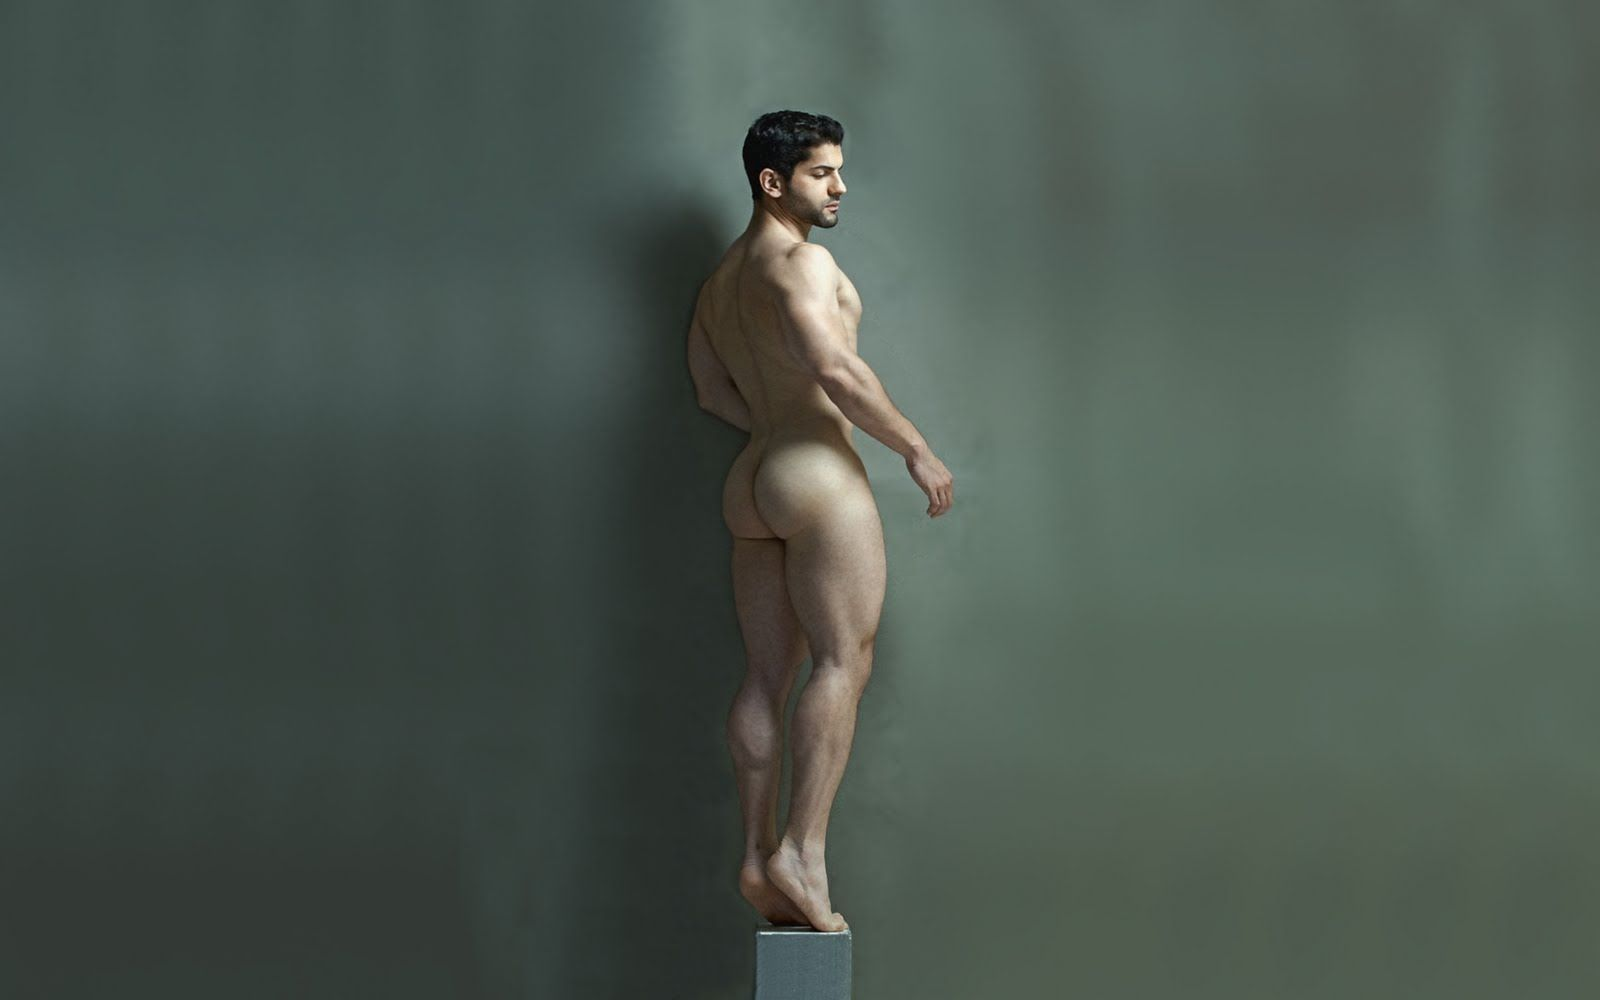 Naked male photo wallpapers fucks photo